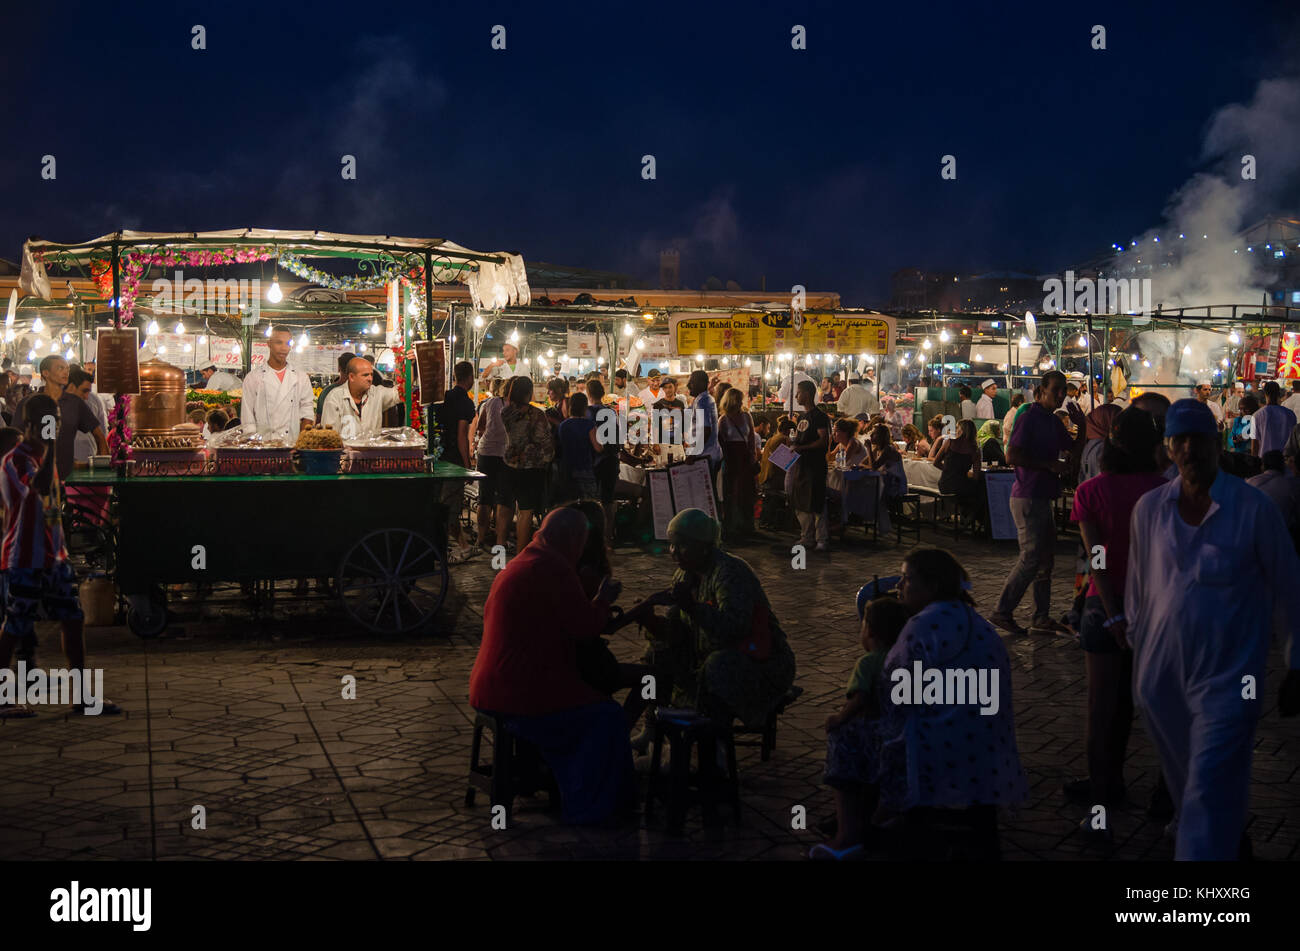 Marrakesh, Morocco - September 05 2013: Food stands with smoke and light on famous Jamaa el Fna square in evening - Stock Image